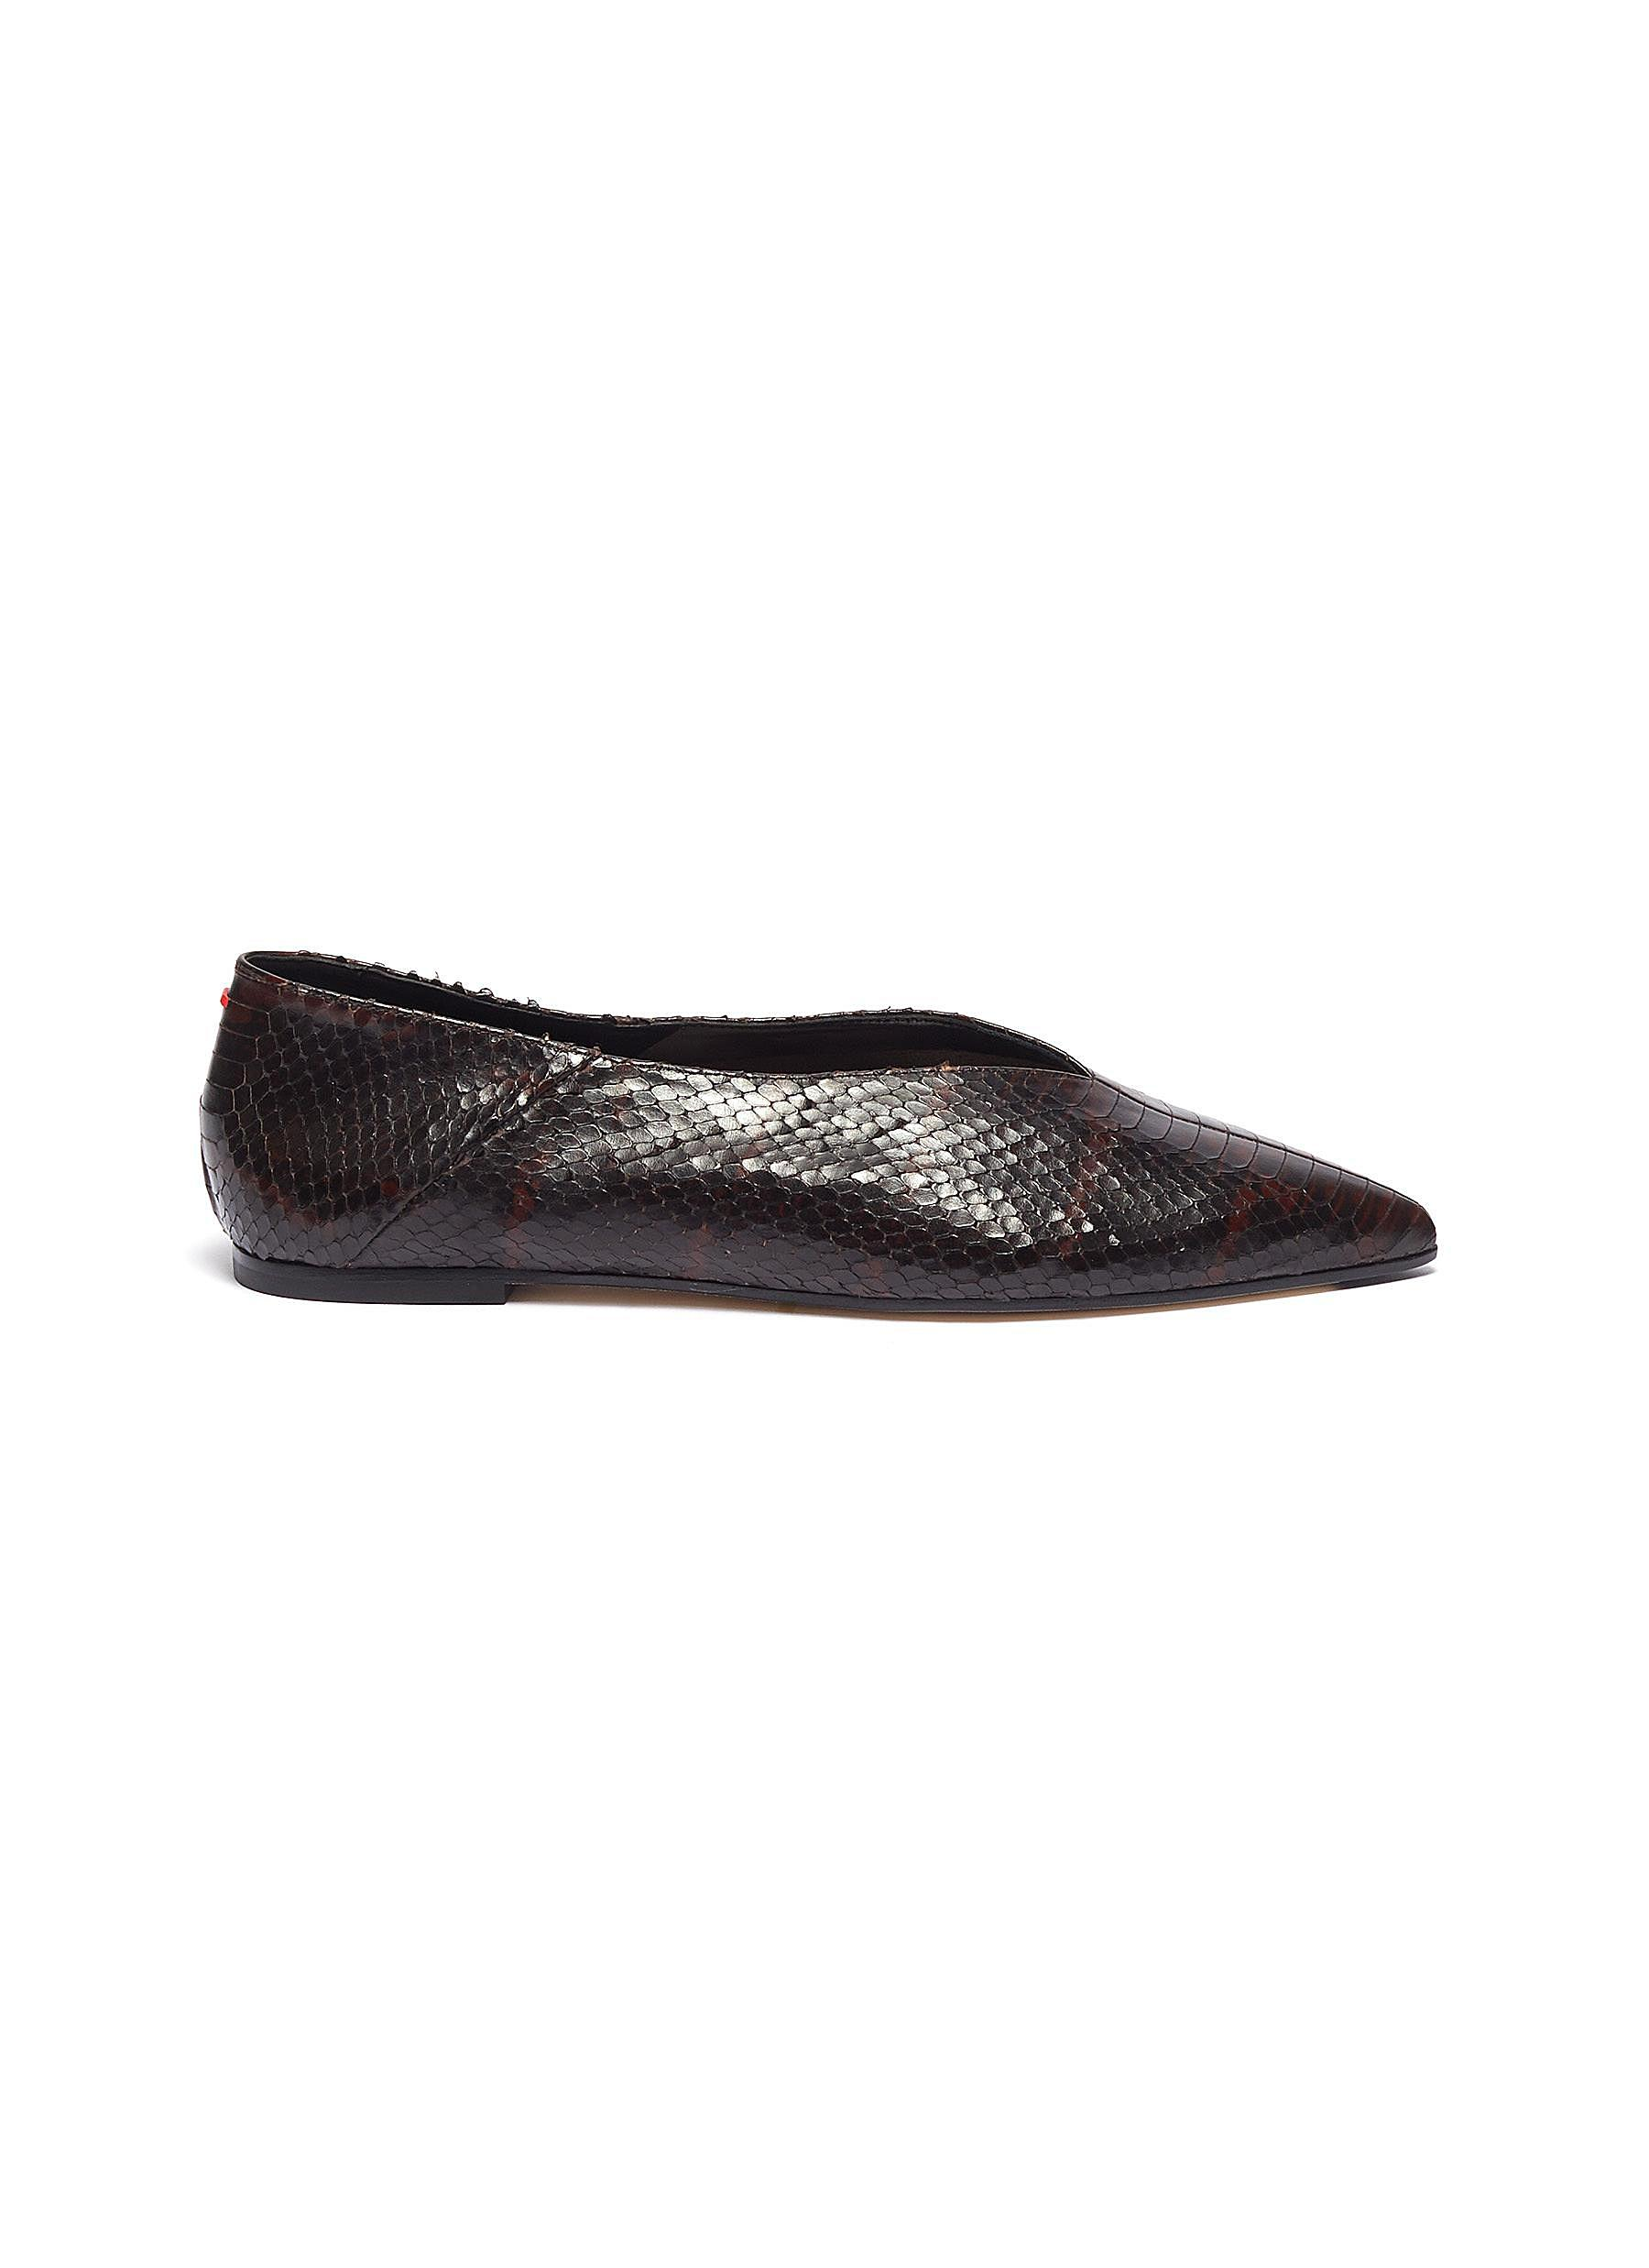 Moa snake embossed choked-up leather flats by Aeyde